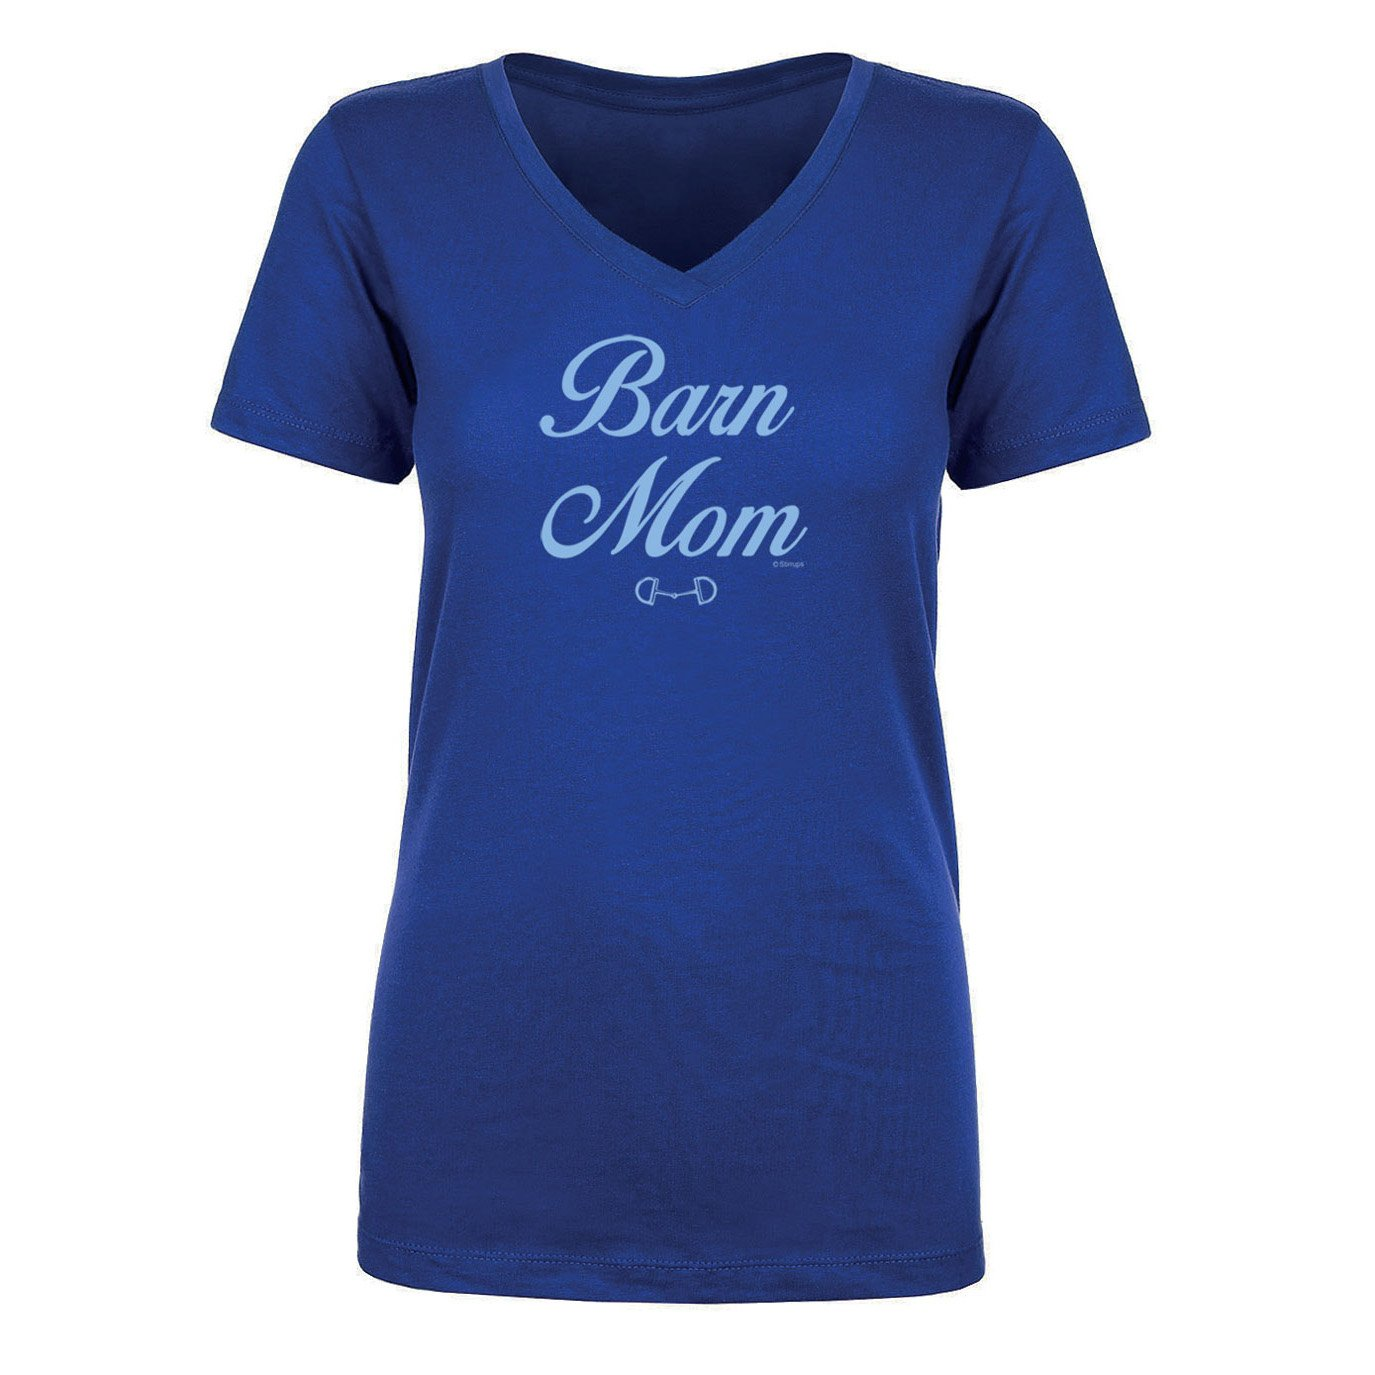 Barn Mom Ladies Short Sleeve V Neck Tee 20123